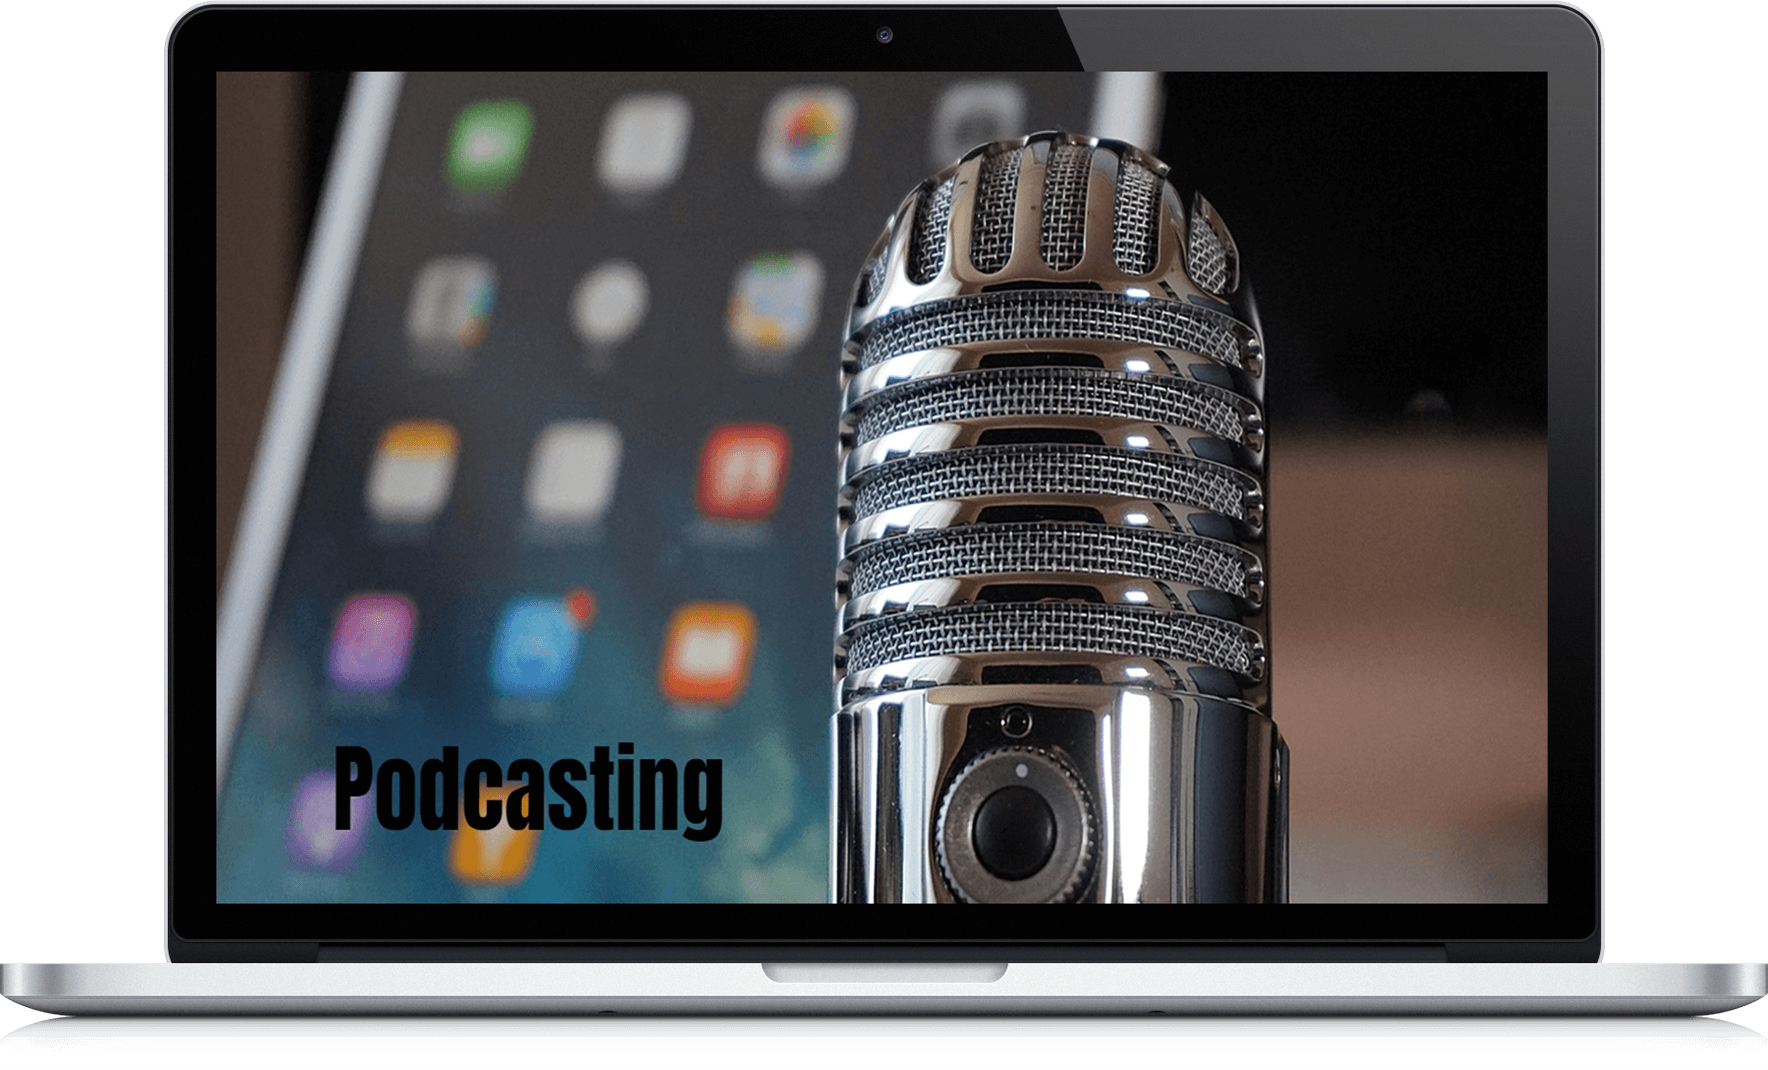 Podcasting 3D